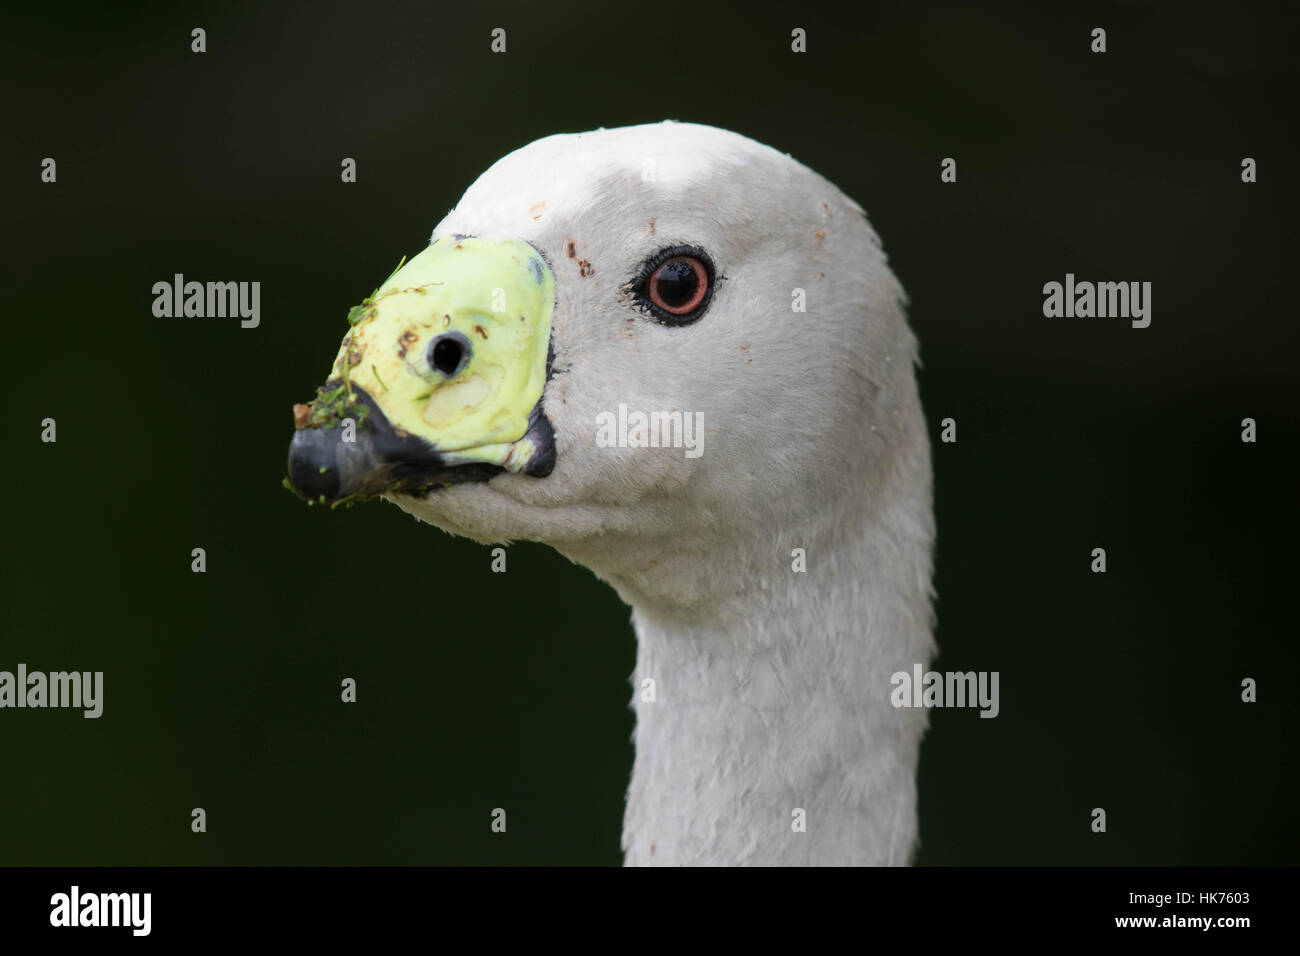 headshot of a Cape Barren Goose (Cereopsis novaehollandiae) Stock Photo